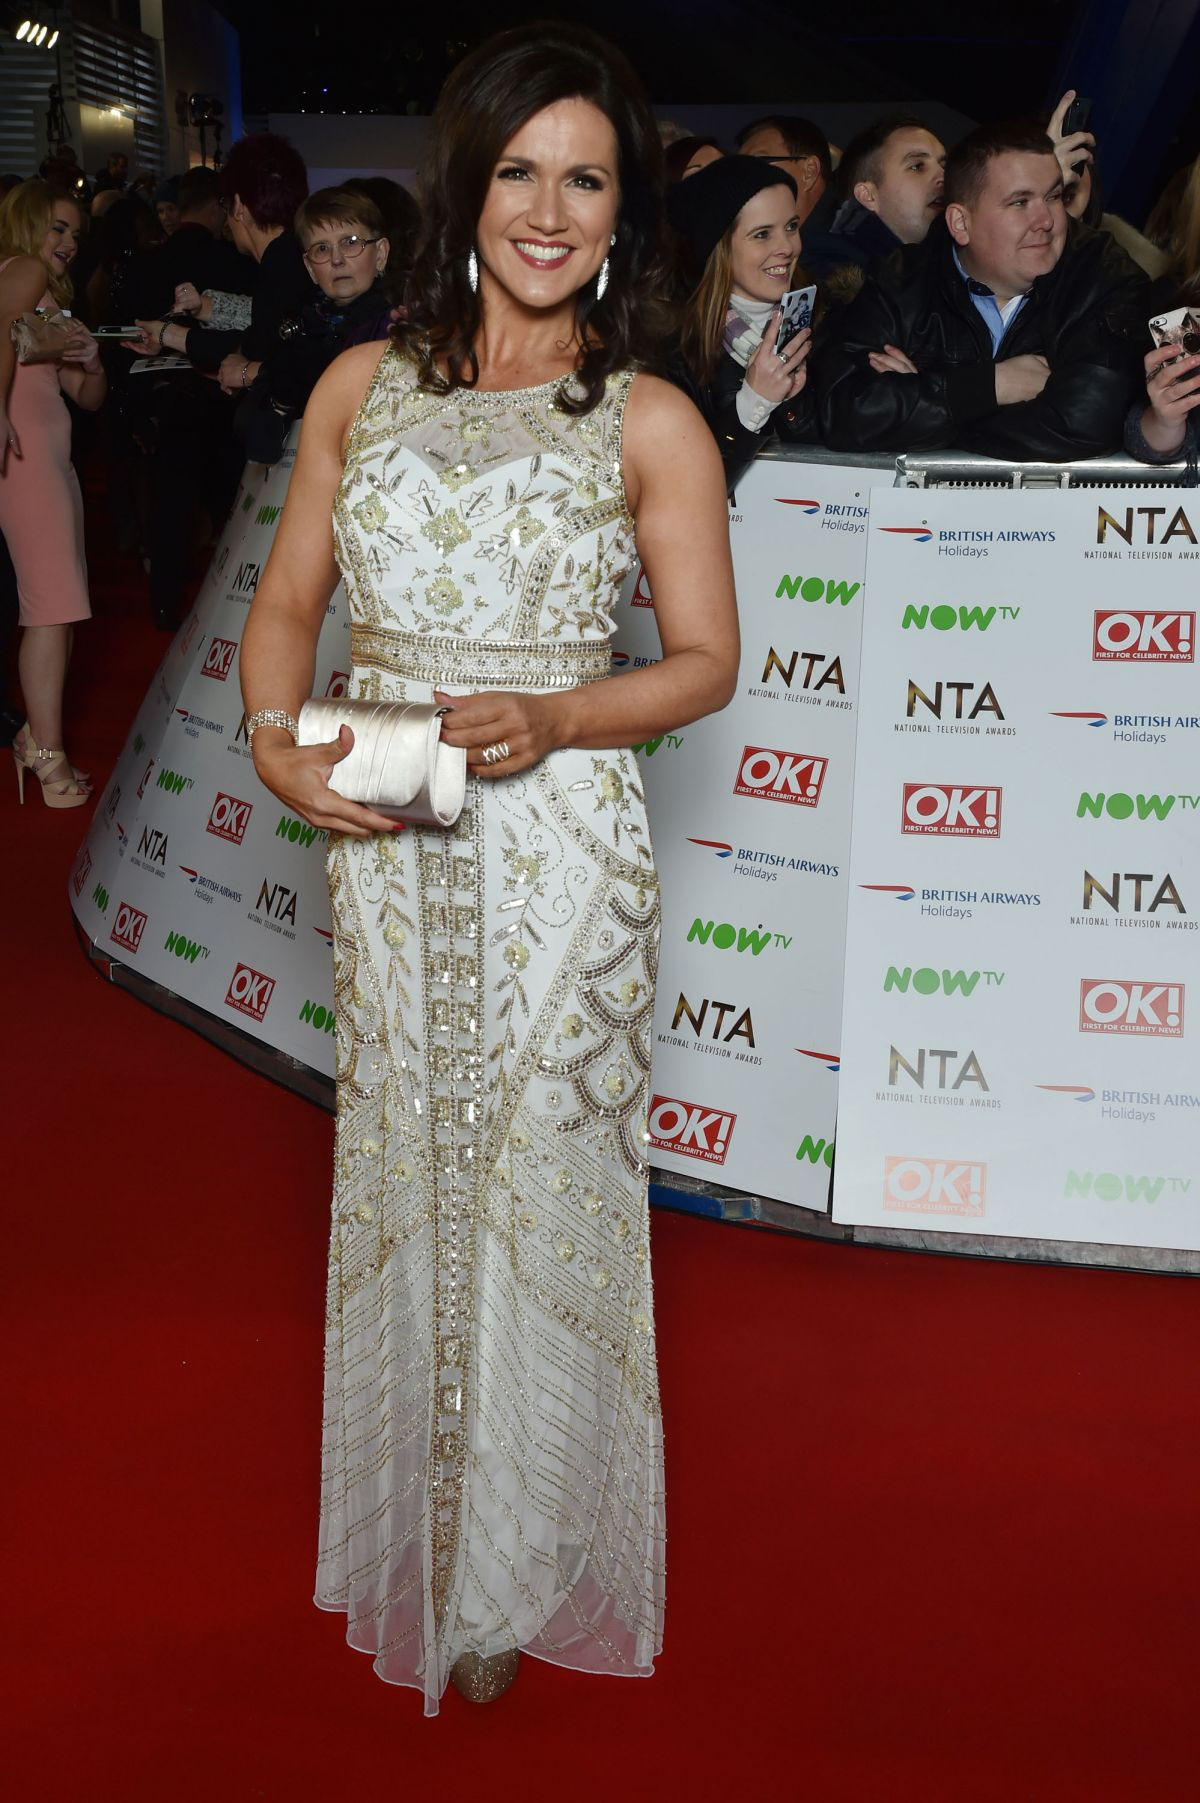 SUSANNA REID at 2016 National Television Awards in London 01/20/2016